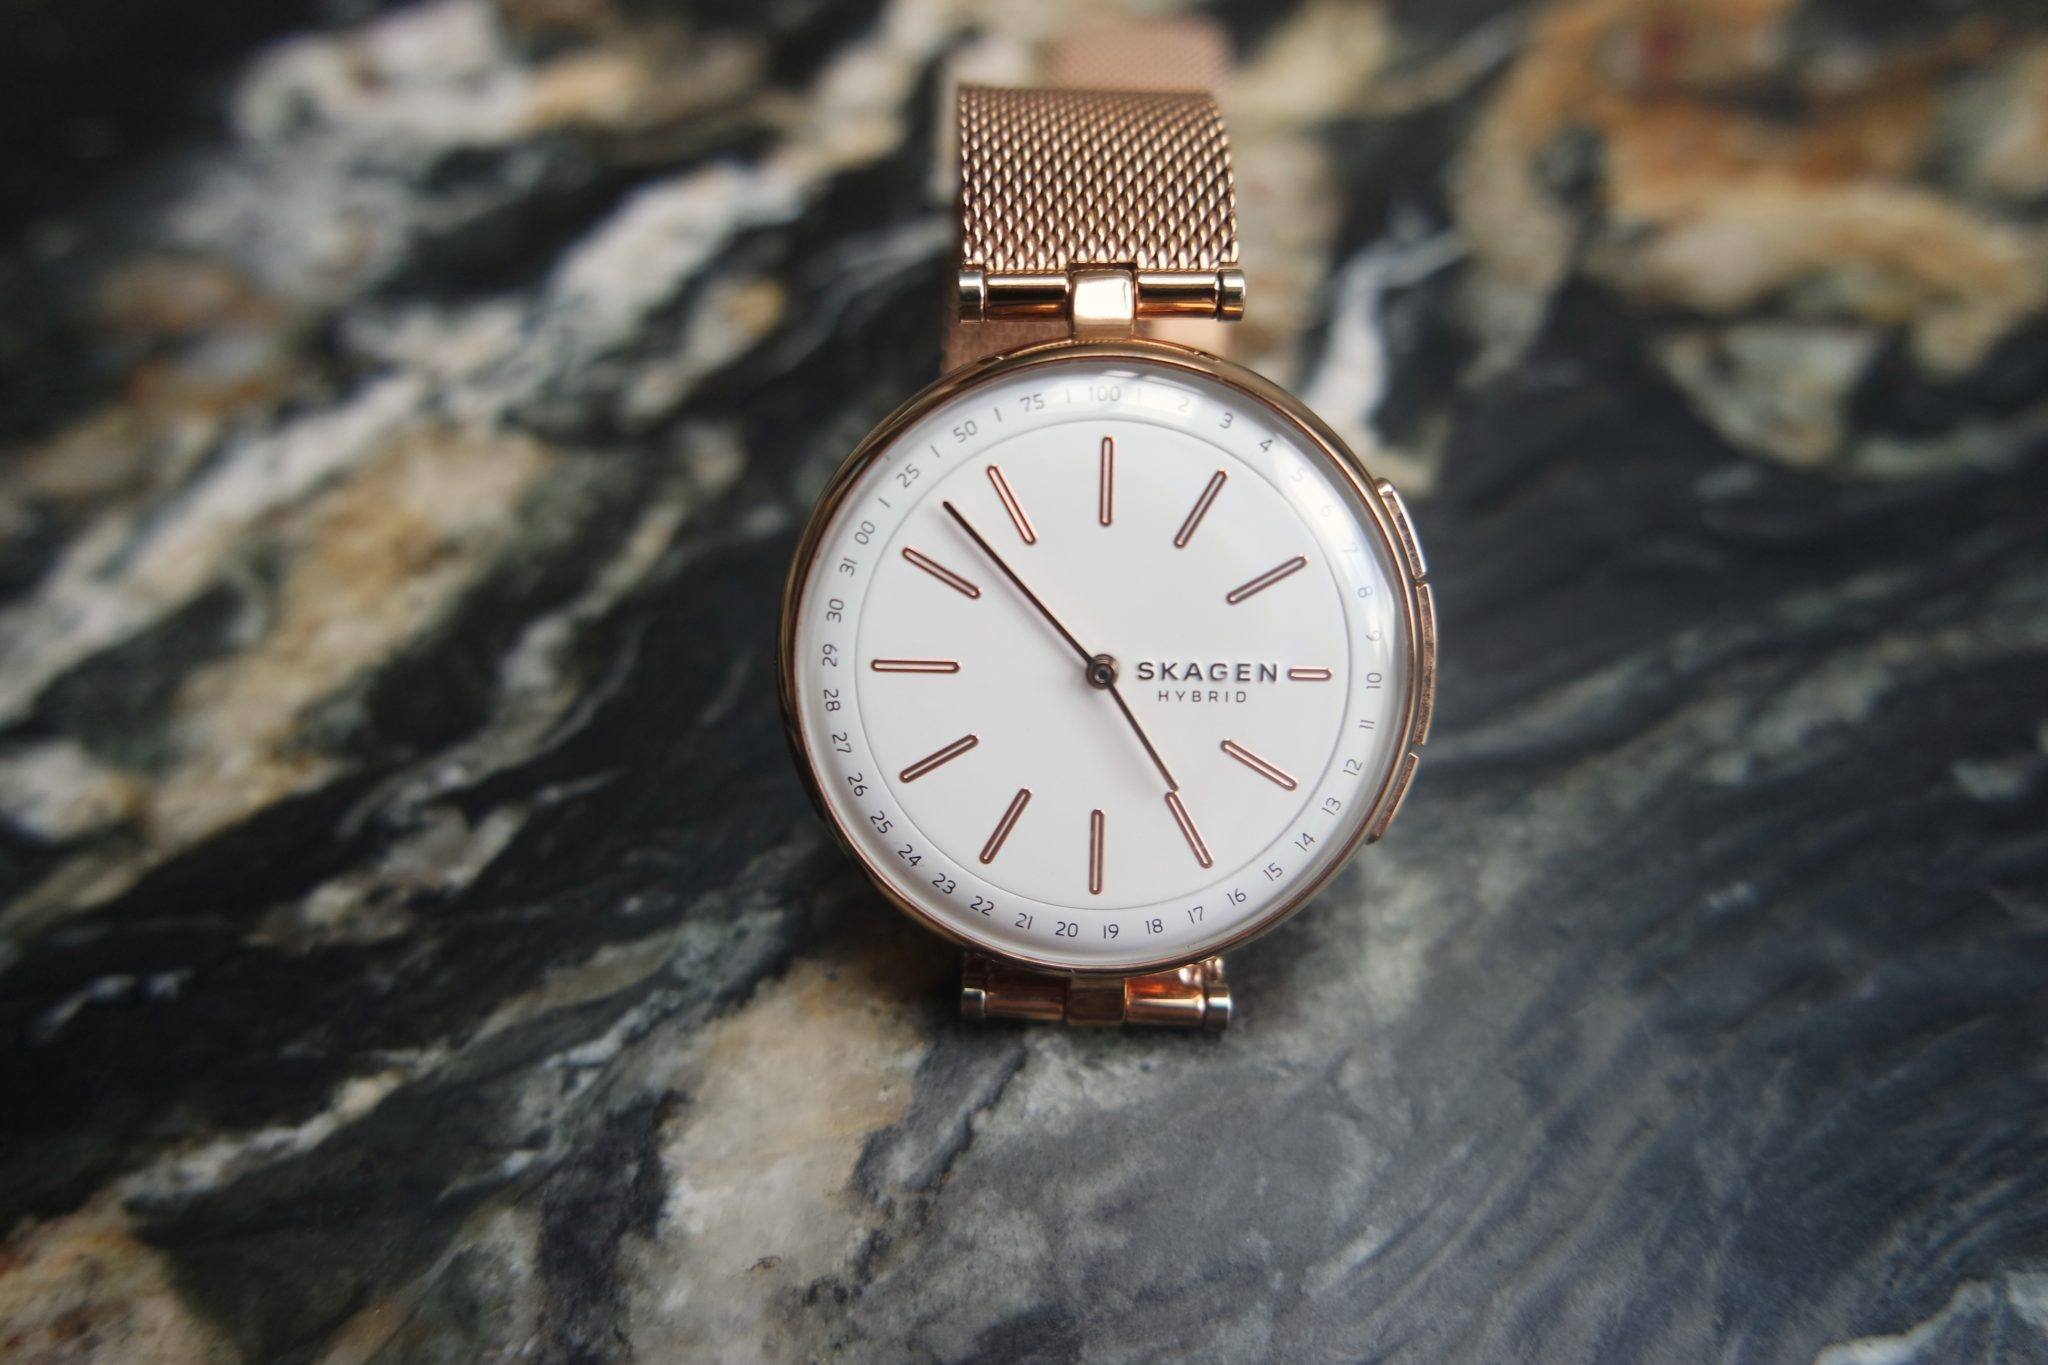 skagen hybrid watch review